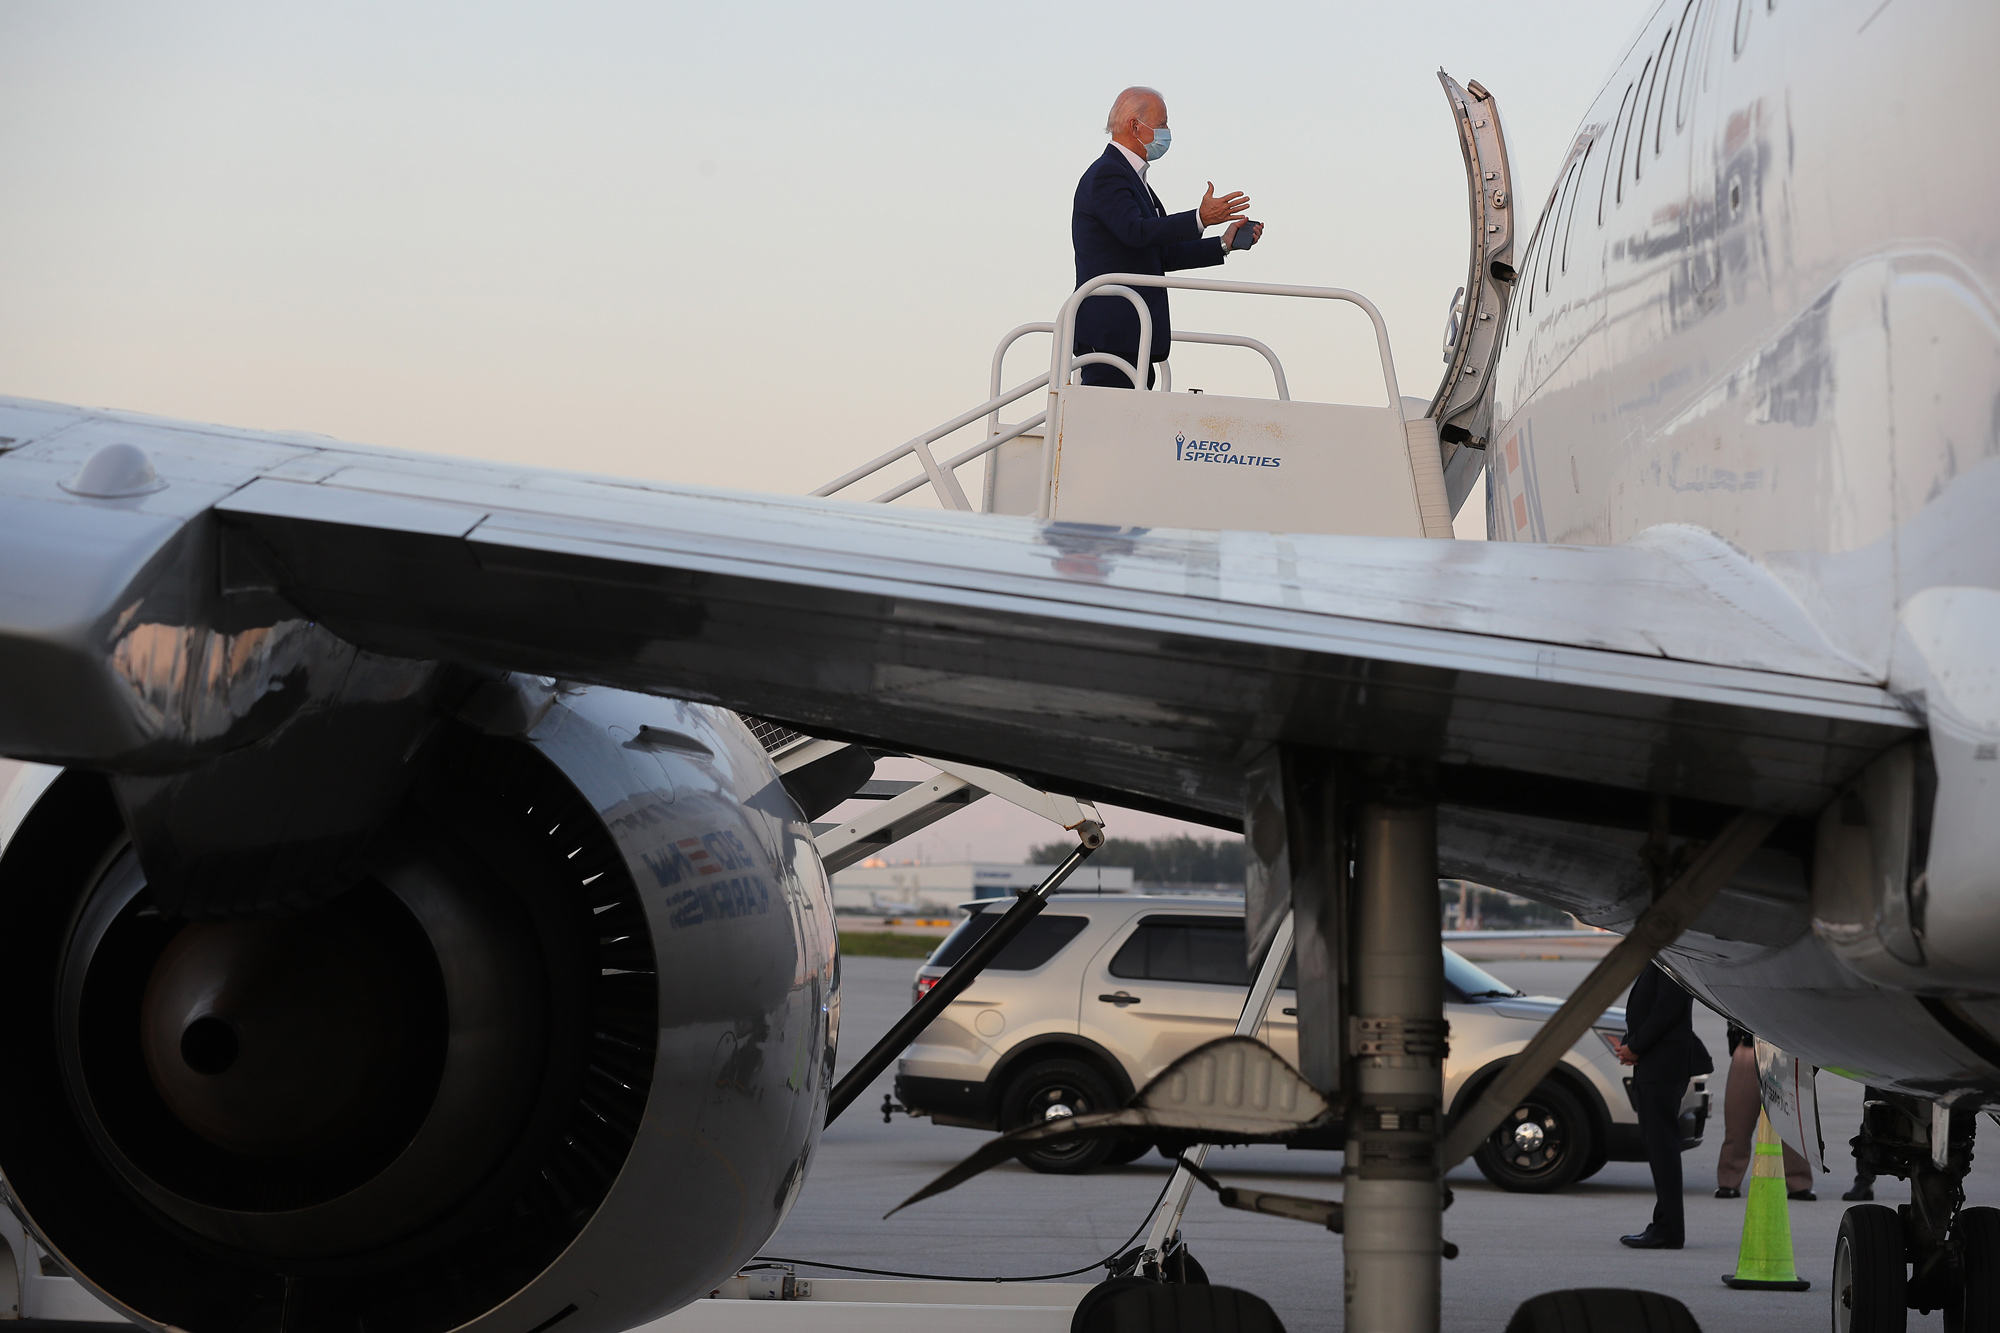 Democratic presidential candidate Joe Biden boards his campaign plane at Fort Lauderdale-Hollywood International Airport October 13 in Fort Lauderdale, Florida.